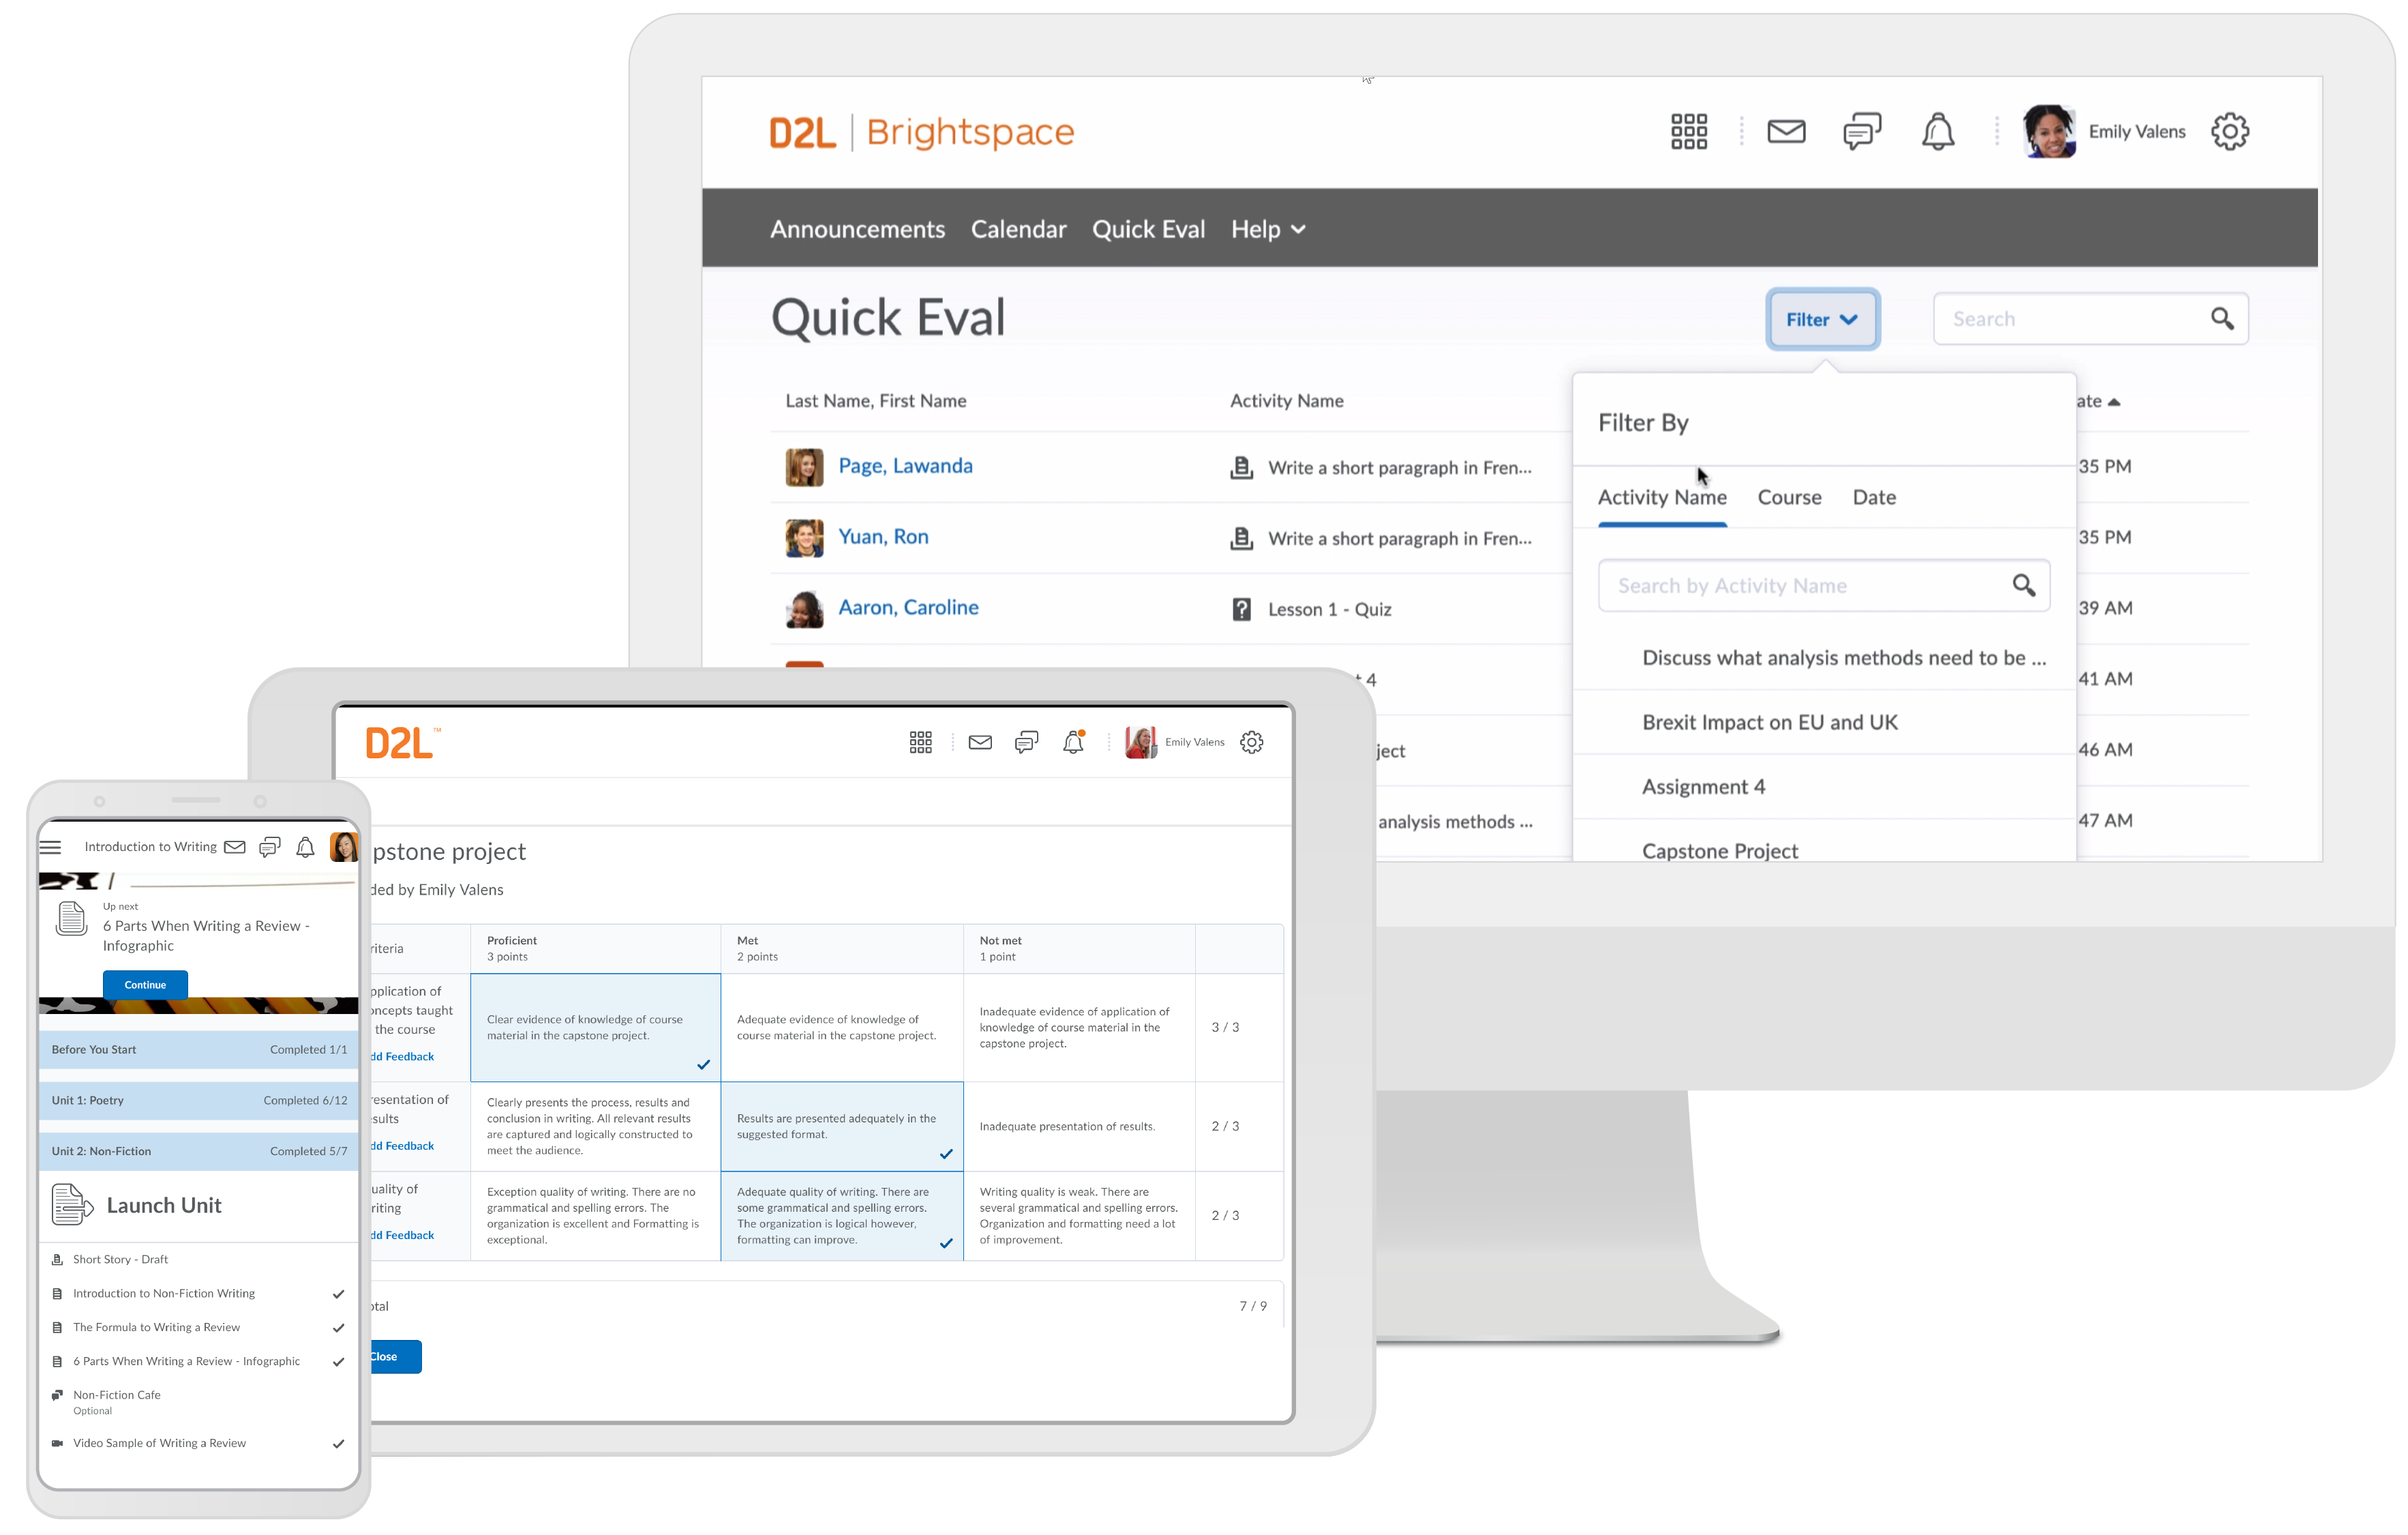 Brightspace LMS for education